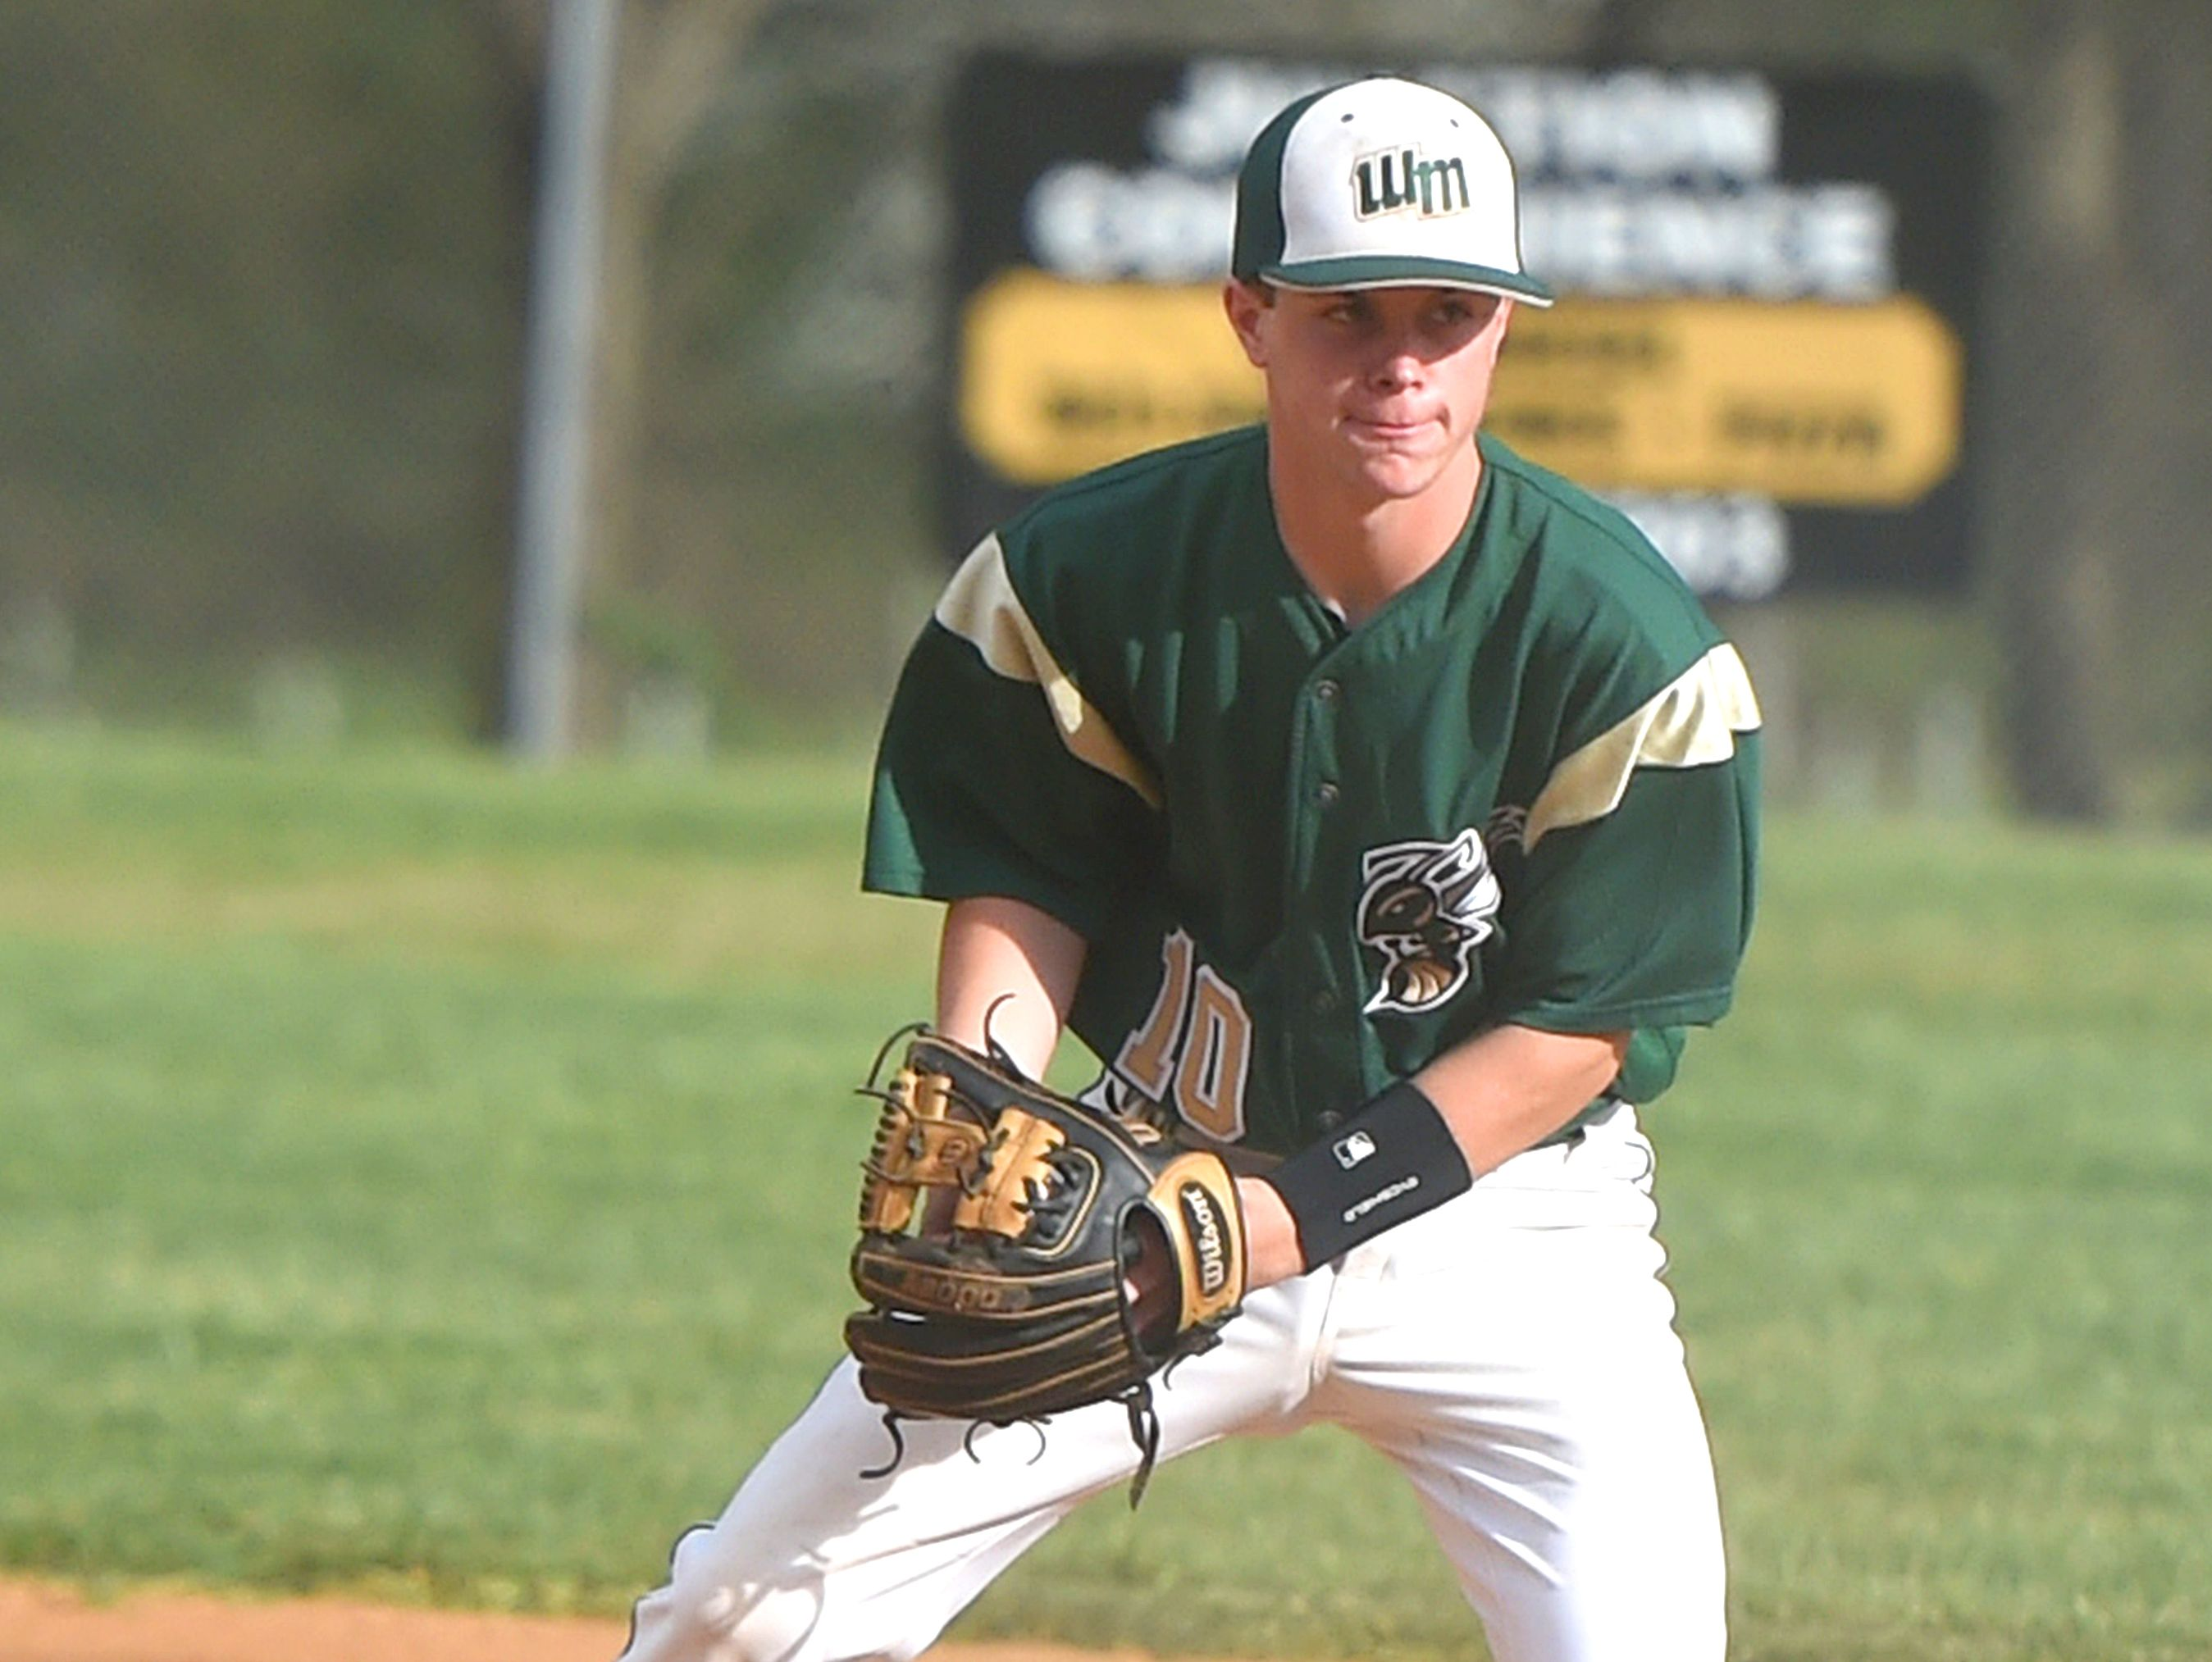 Wilson Memorial's Gage Wood fields a grounder in the first inning in of the Green Hornets' game against Buffalo Gap on April 26.